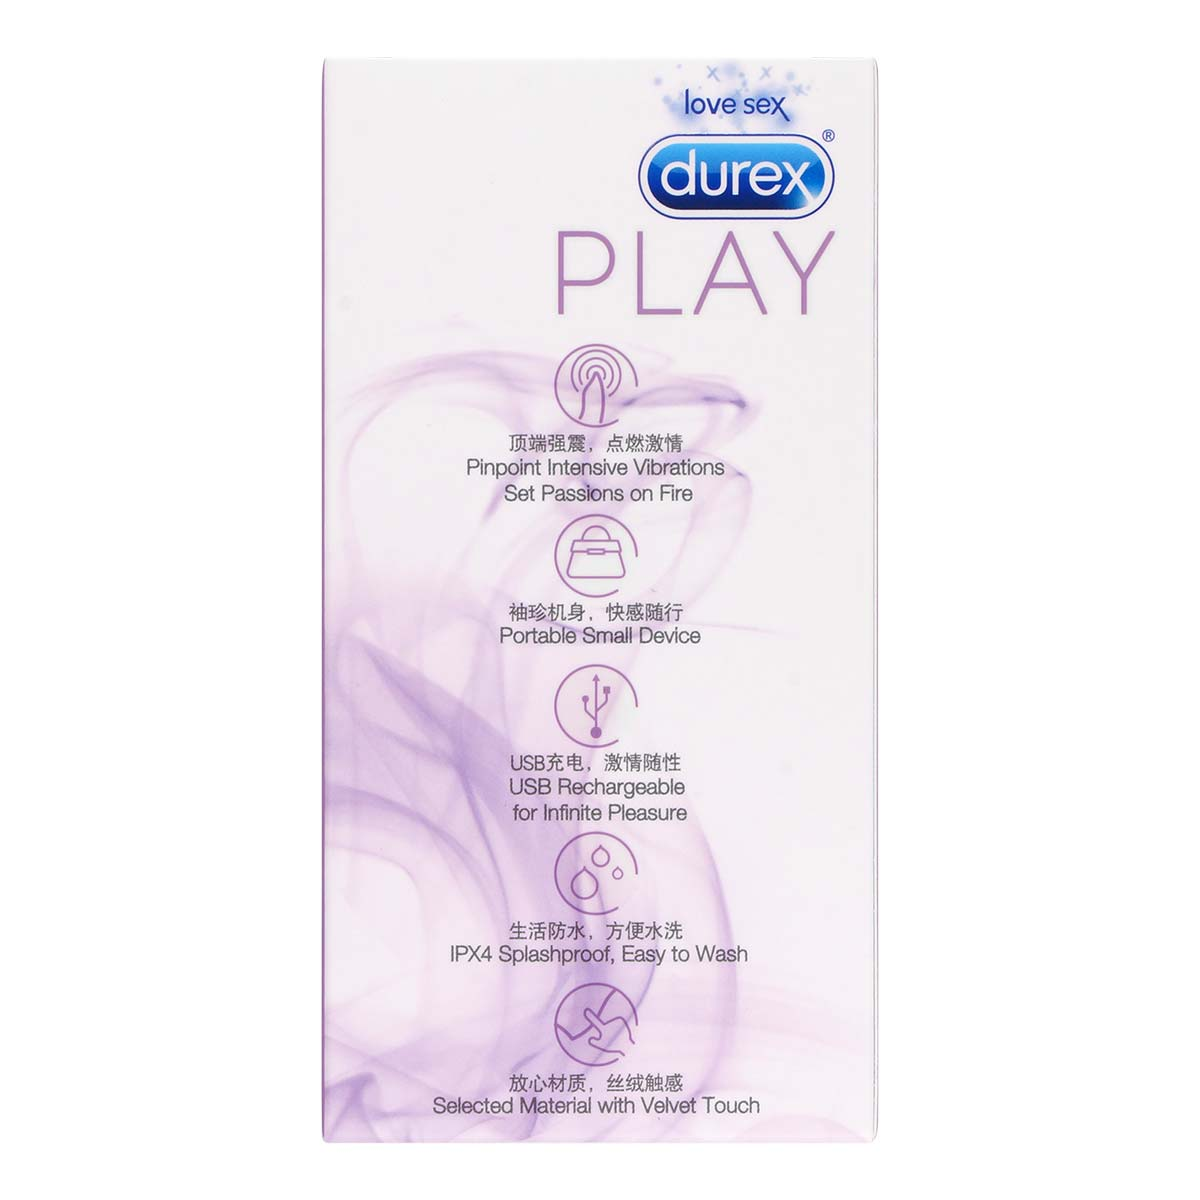 Durex Play S-Vibe rechargeable stroker